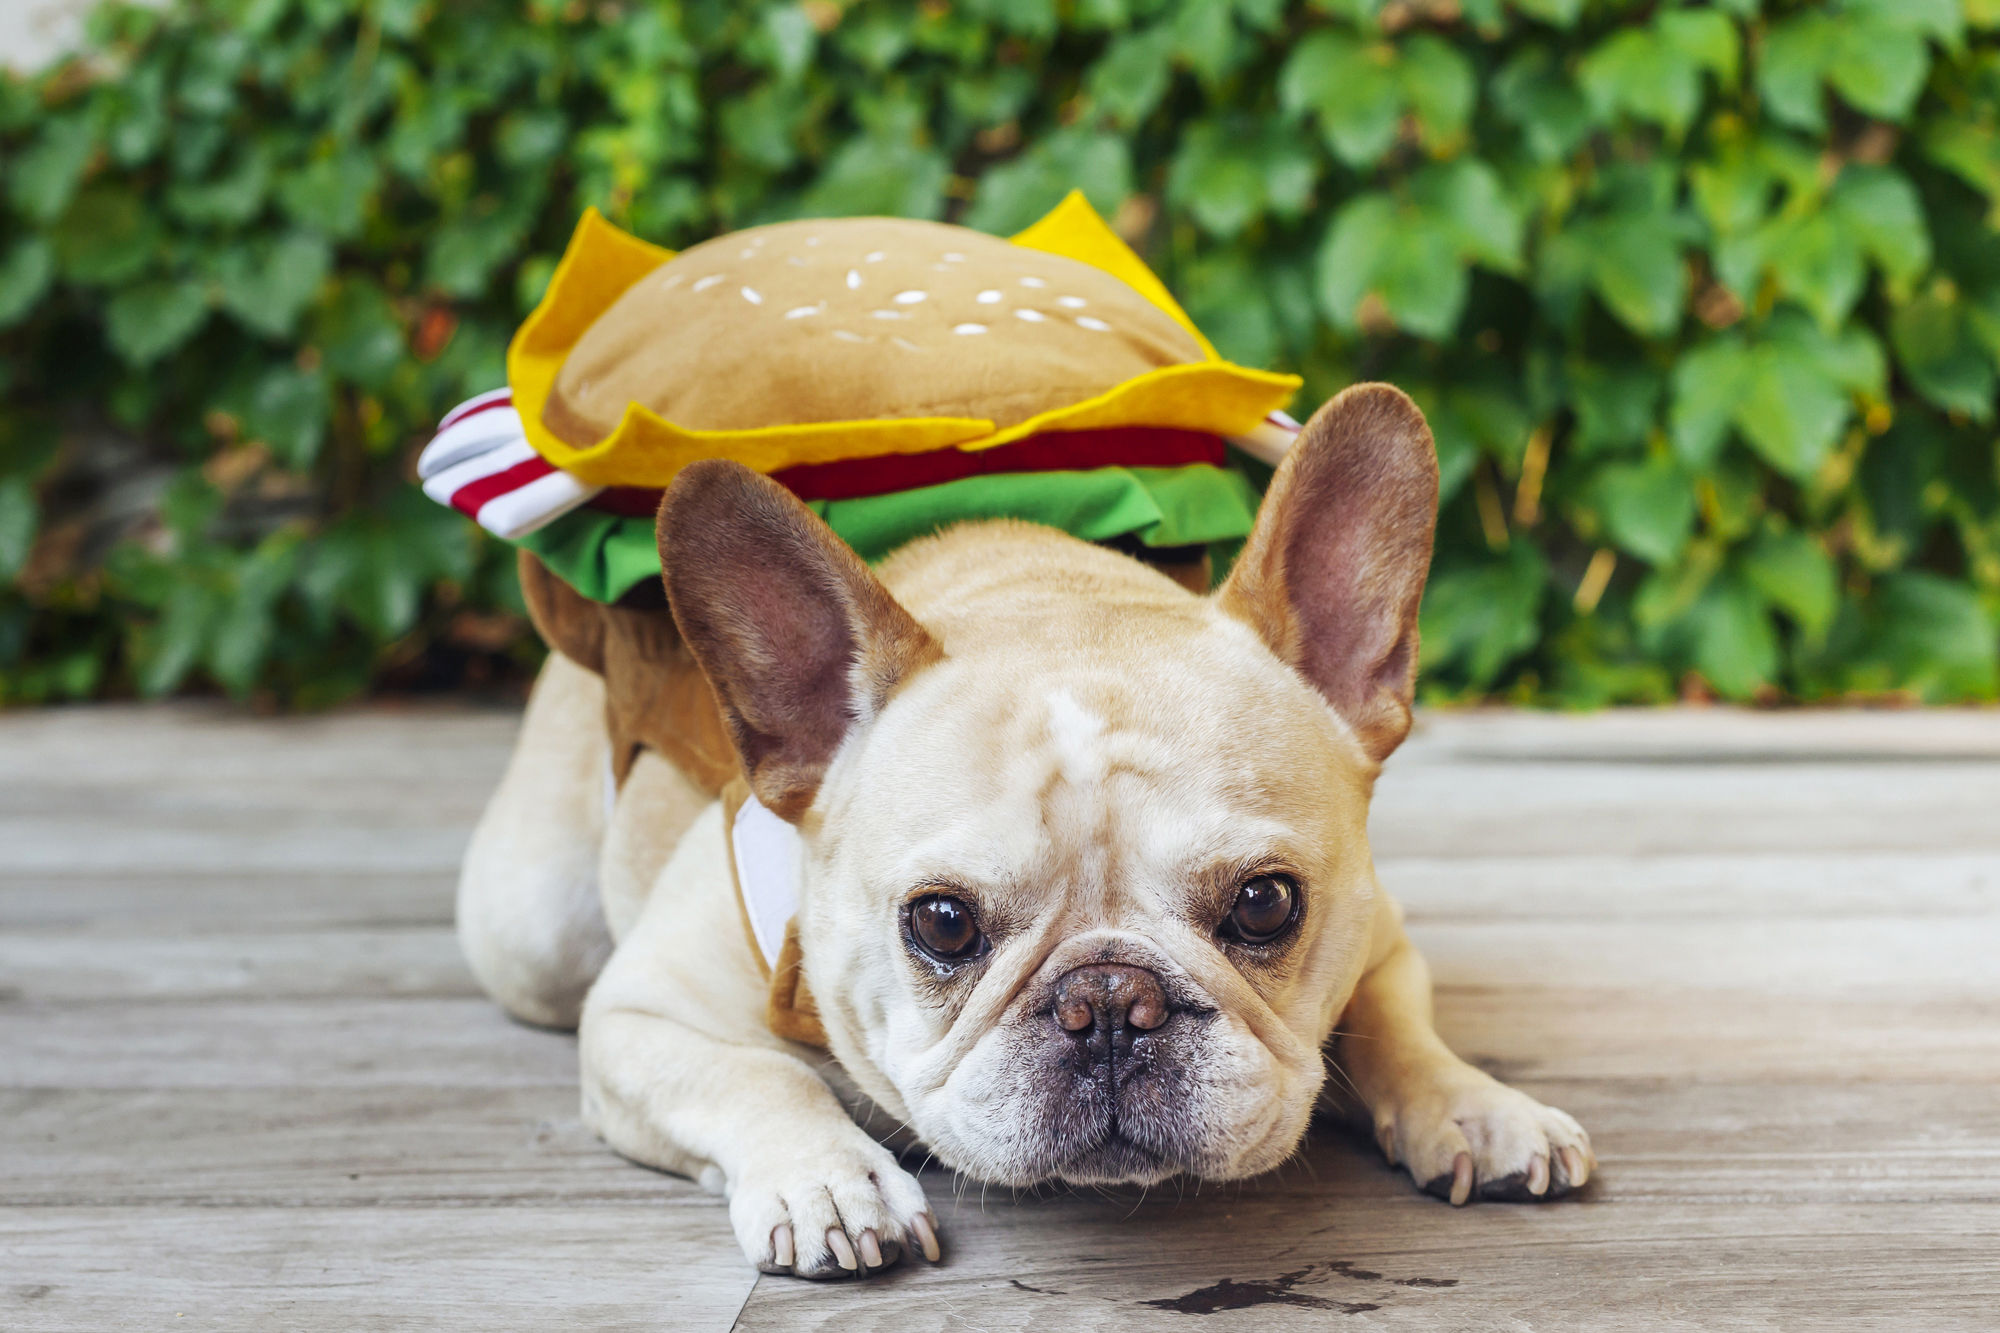 Local Dogs and Cats Who Have Already Picked Out Their Halloween Costumes